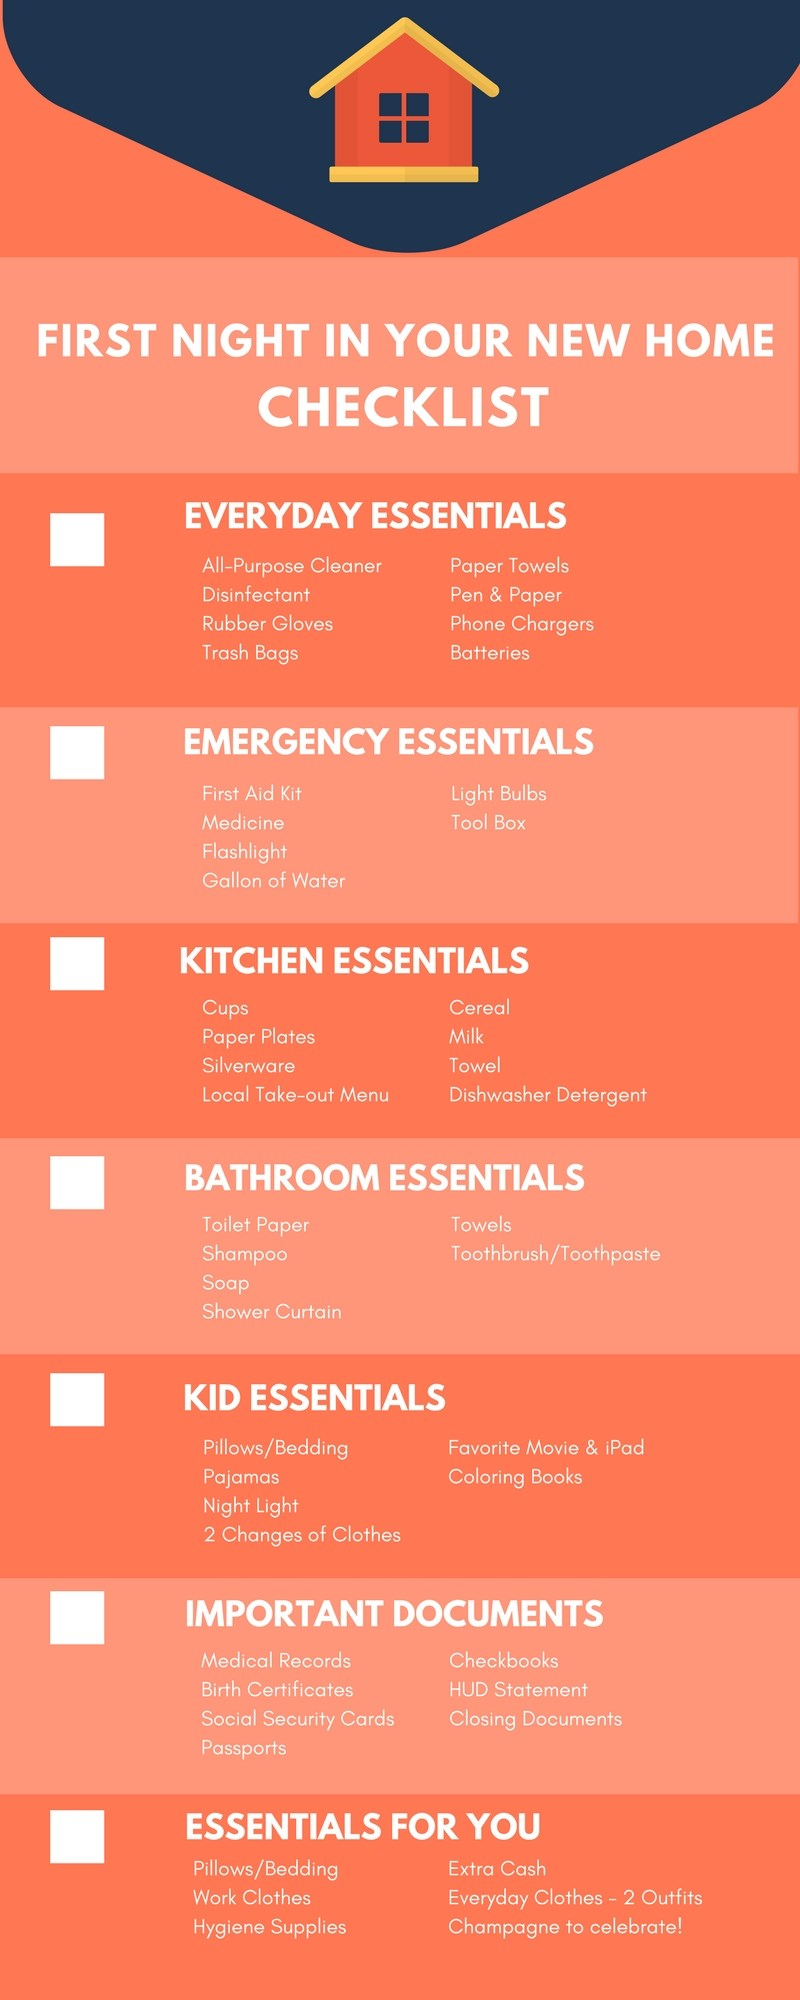 A Checklist for a Successful First Night in Your New Home